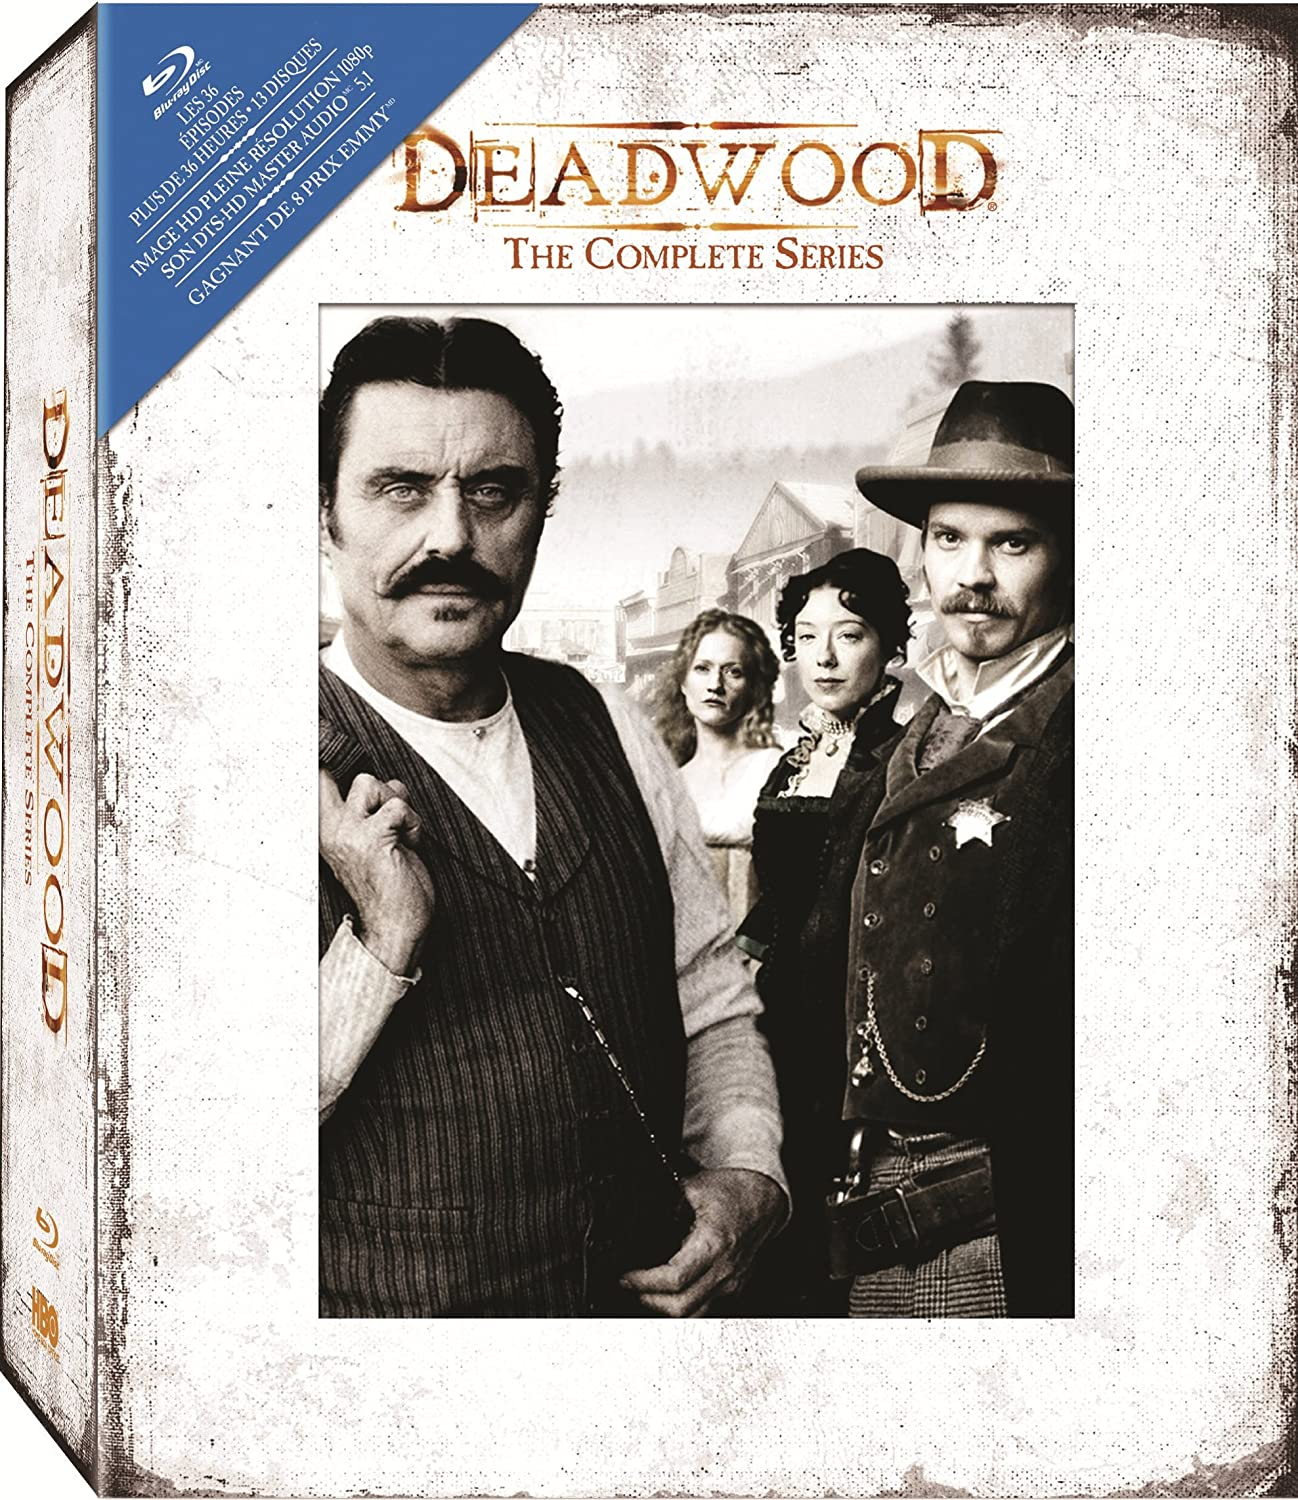 Deadwood: The Complete Series [Blu-ray] (Sous-titres français) Various HBO 29016994 Drama